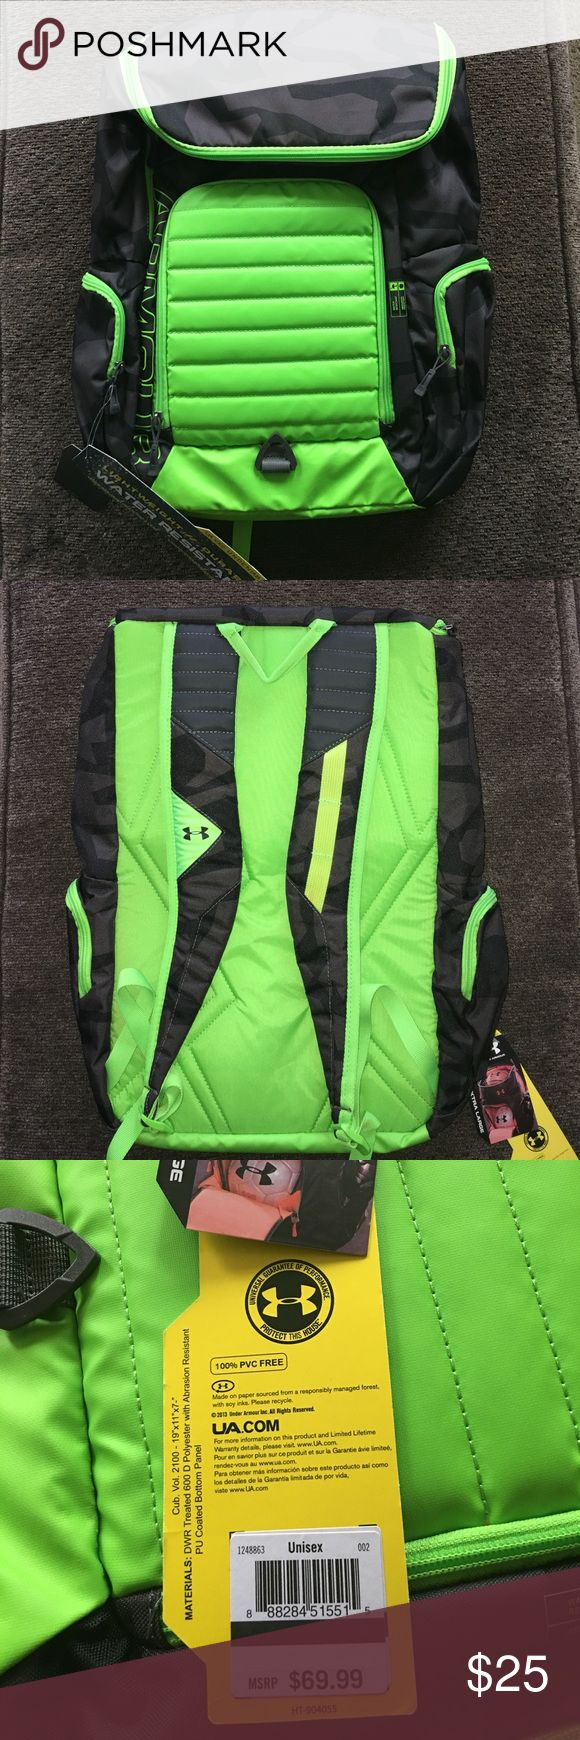 Under Armour Undeniable Vx2 Backpack Like New Condition - Unisex Backpack - Two Pen Ink Stains On The Inside Of The Bag As Seen In The Photos - No Other Problems - Water Resistant - Lightweight & Durable - XL Bag - Lime Green & Black Camo Under Armour Bags Backpacks